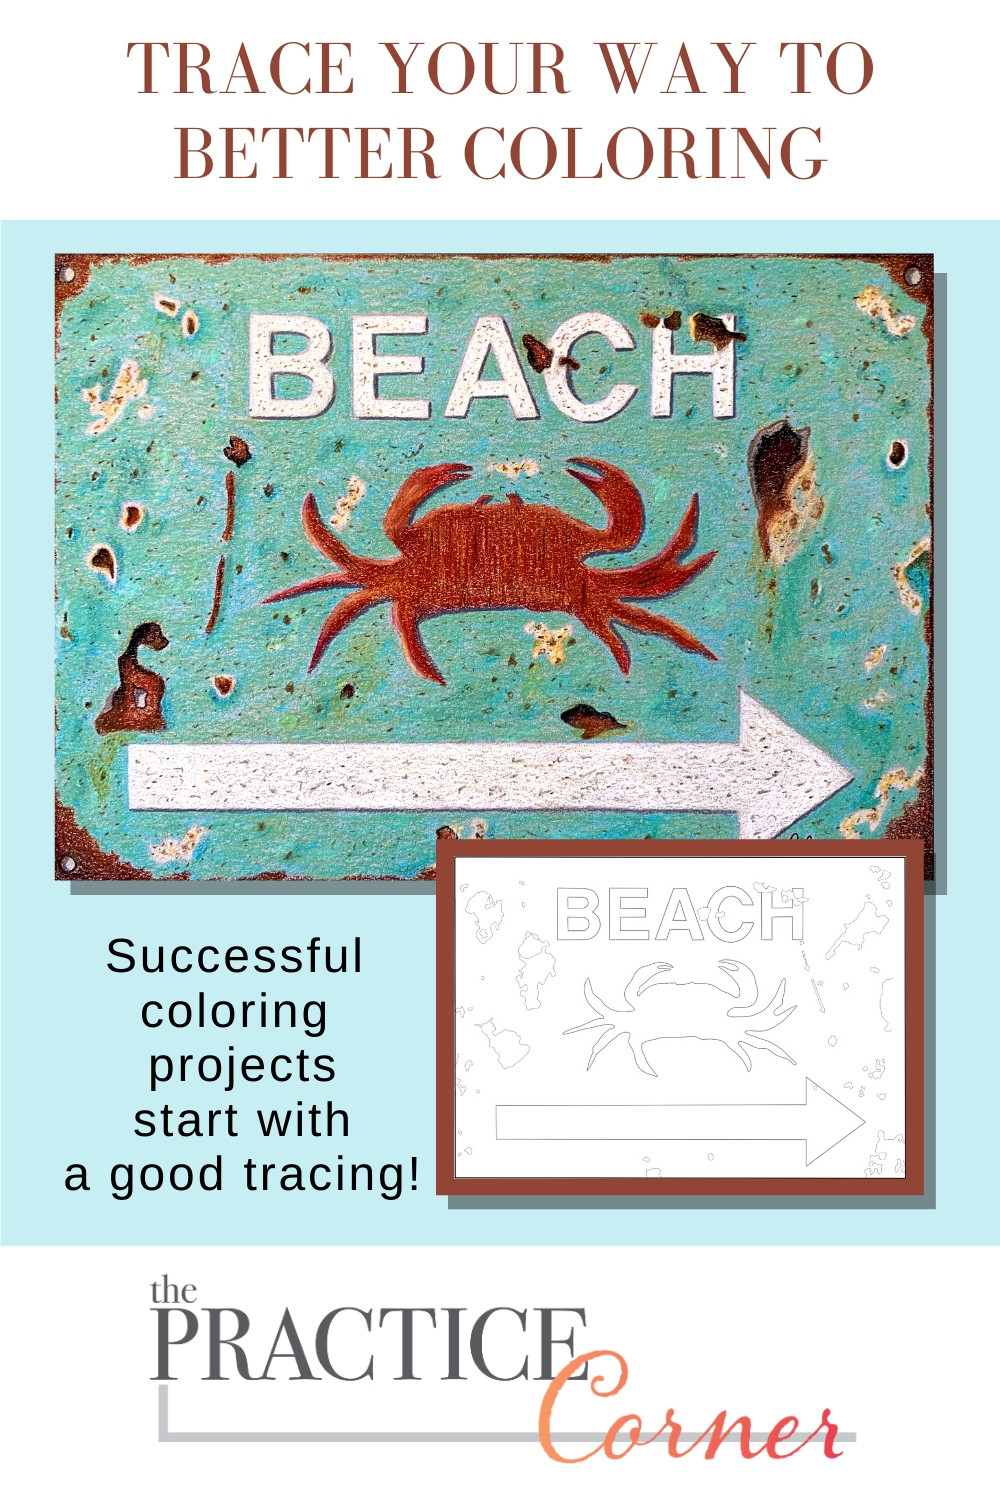 Tracing is a key coloring skill | #thepracticecorner #coloringtips